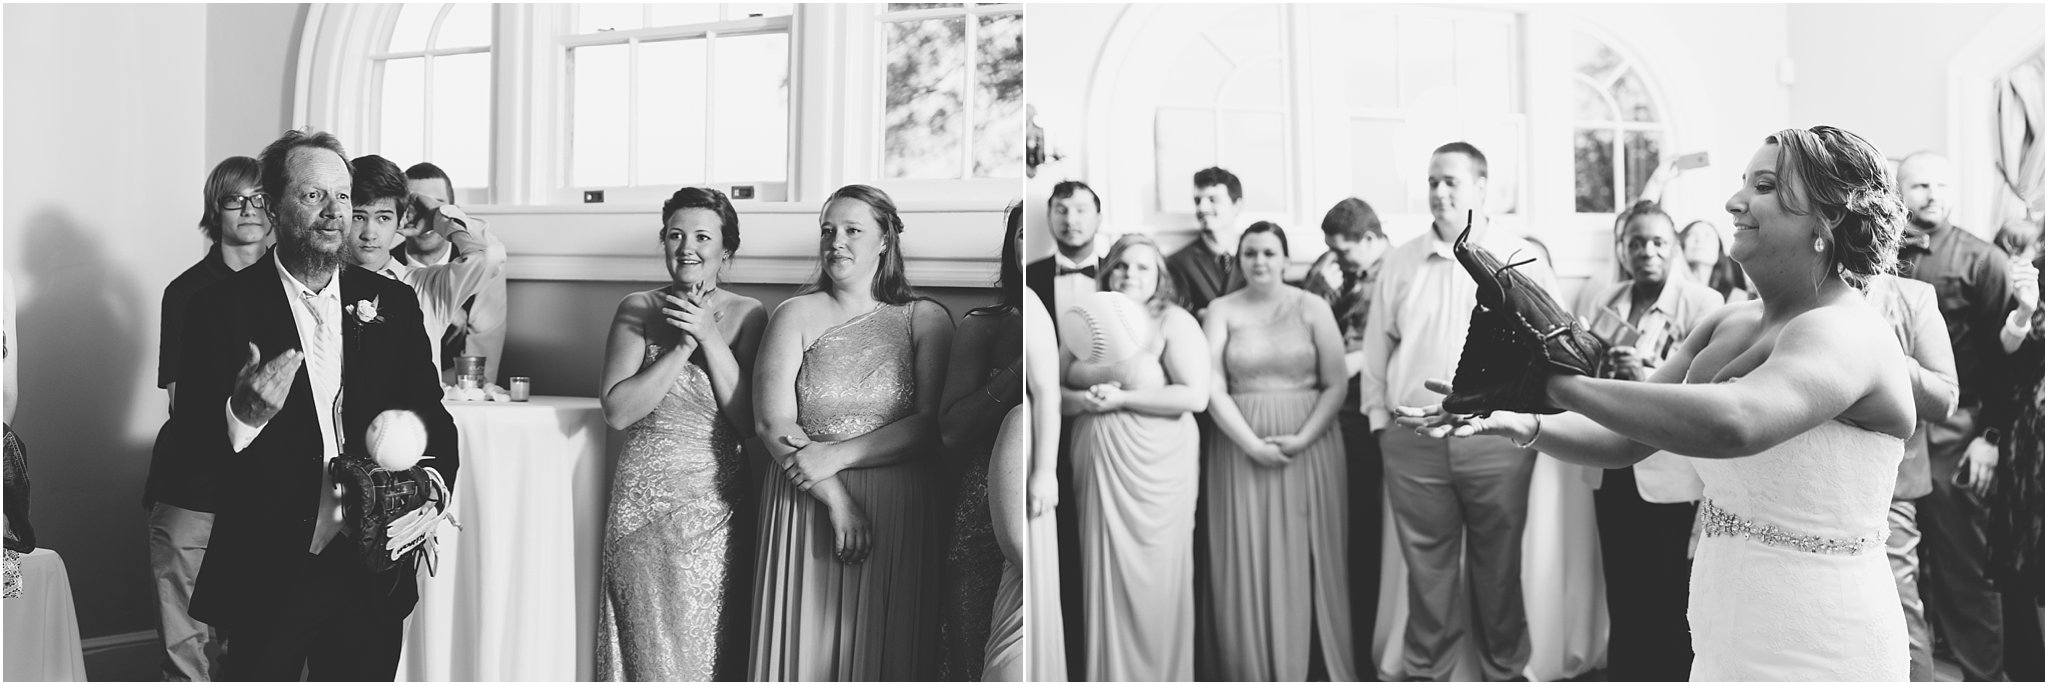 jessica_ryan_photography_wedding_suffolk_obici_house_wedding_0466